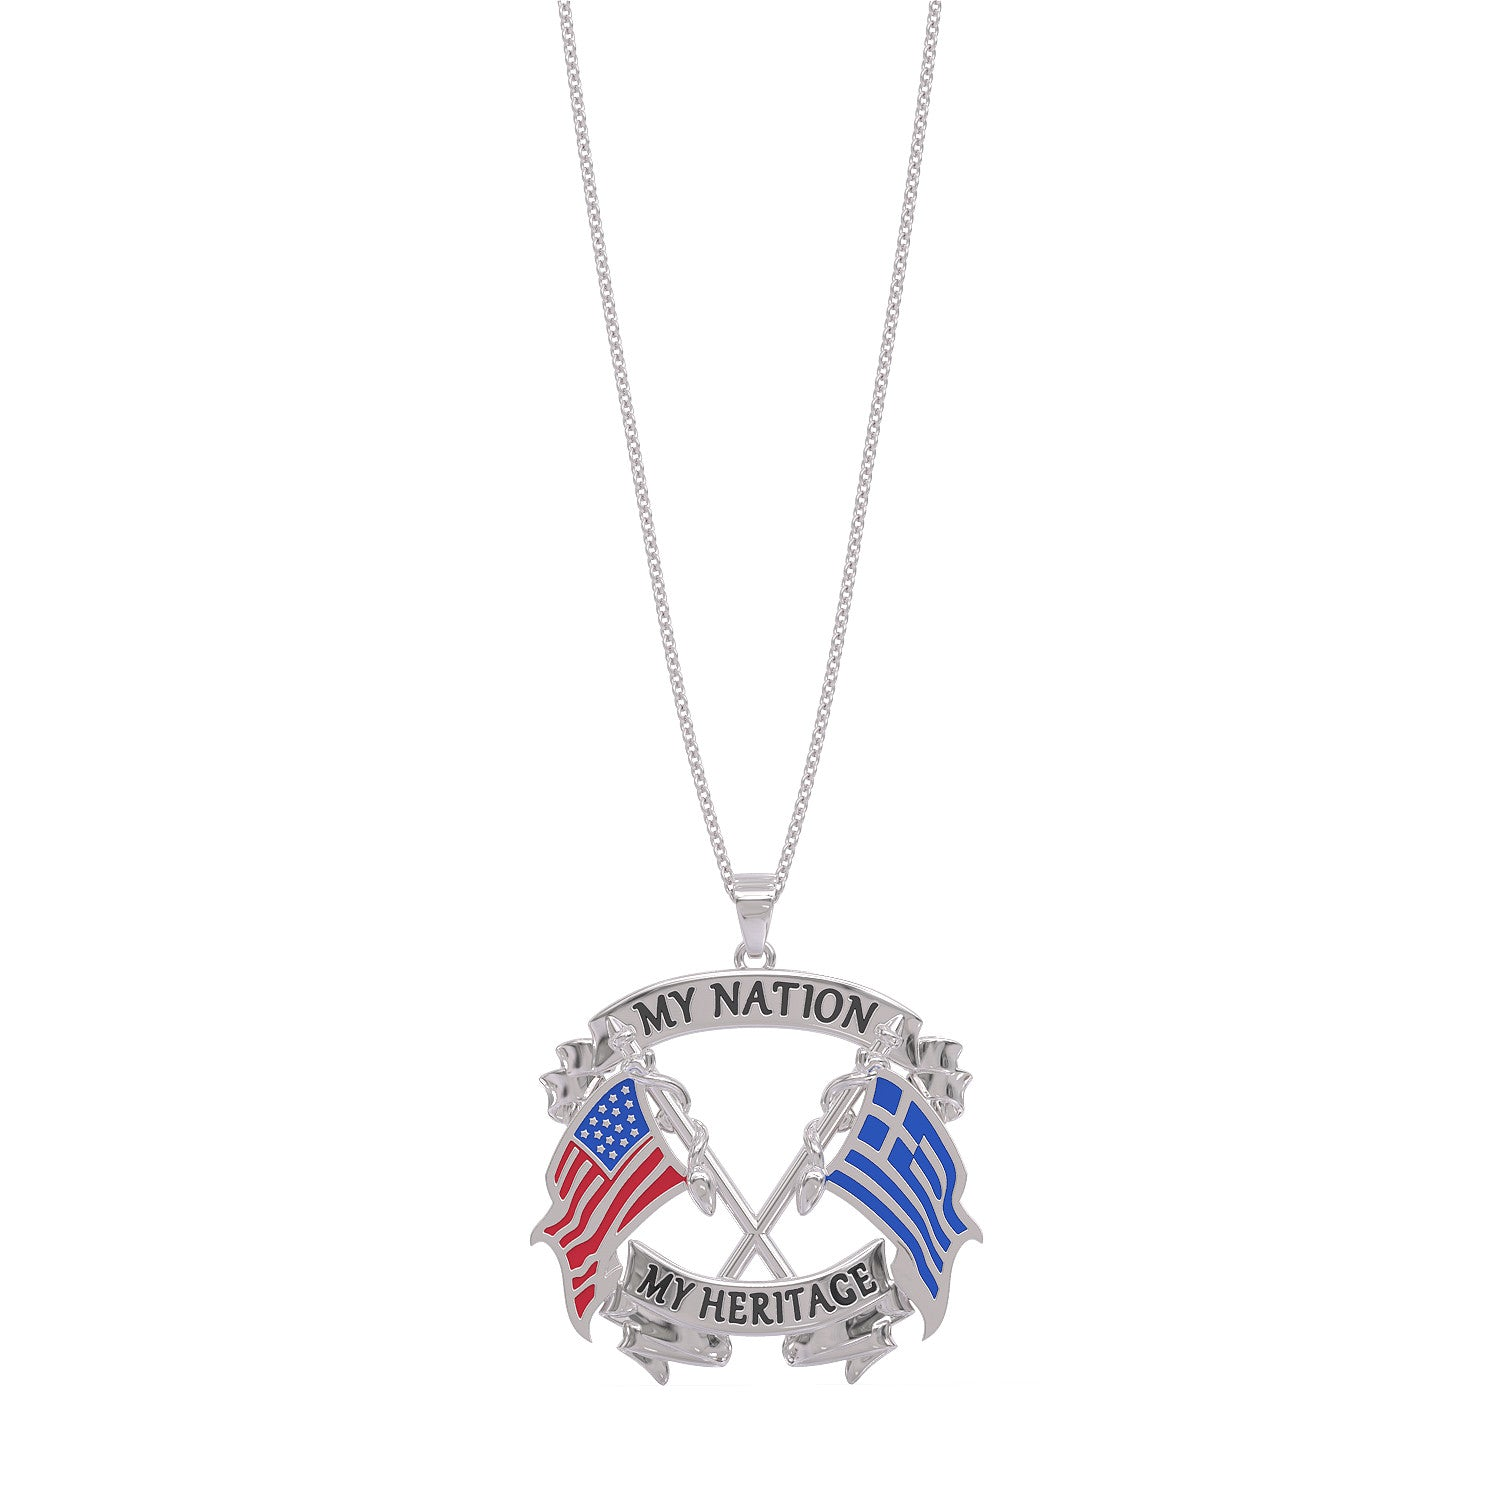 My Nation My Heritage Greek Necklace